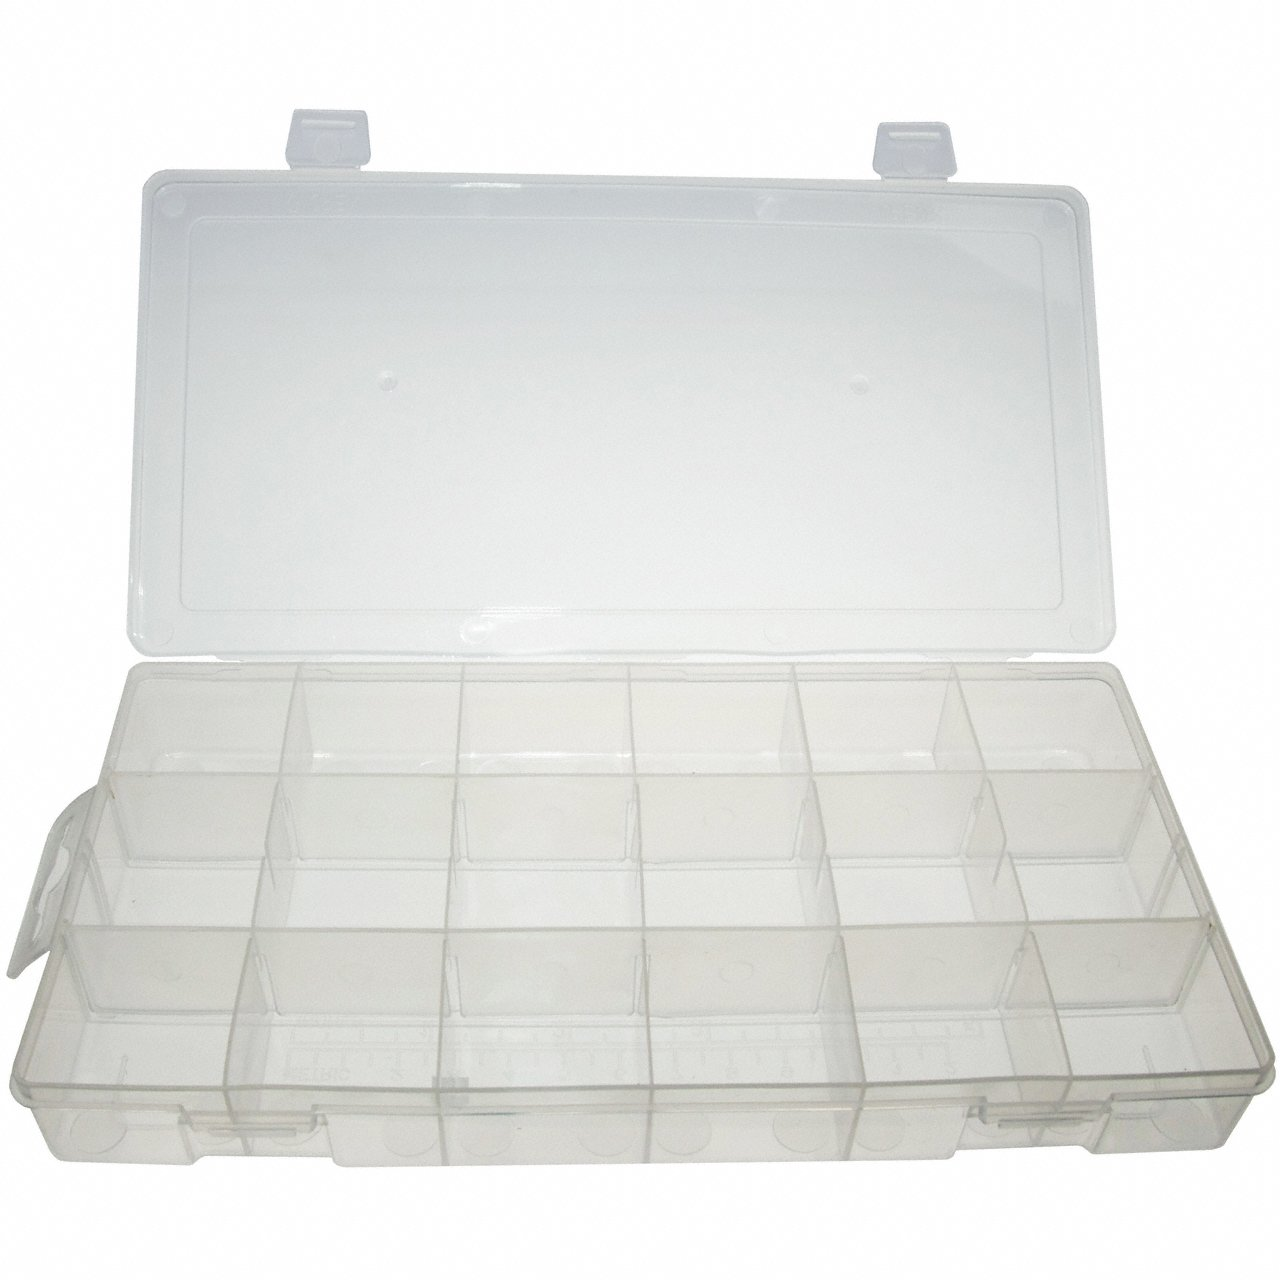 Universal Empty Storage Box / Assortment Box / Storage Container with 18 Compartments Alkan